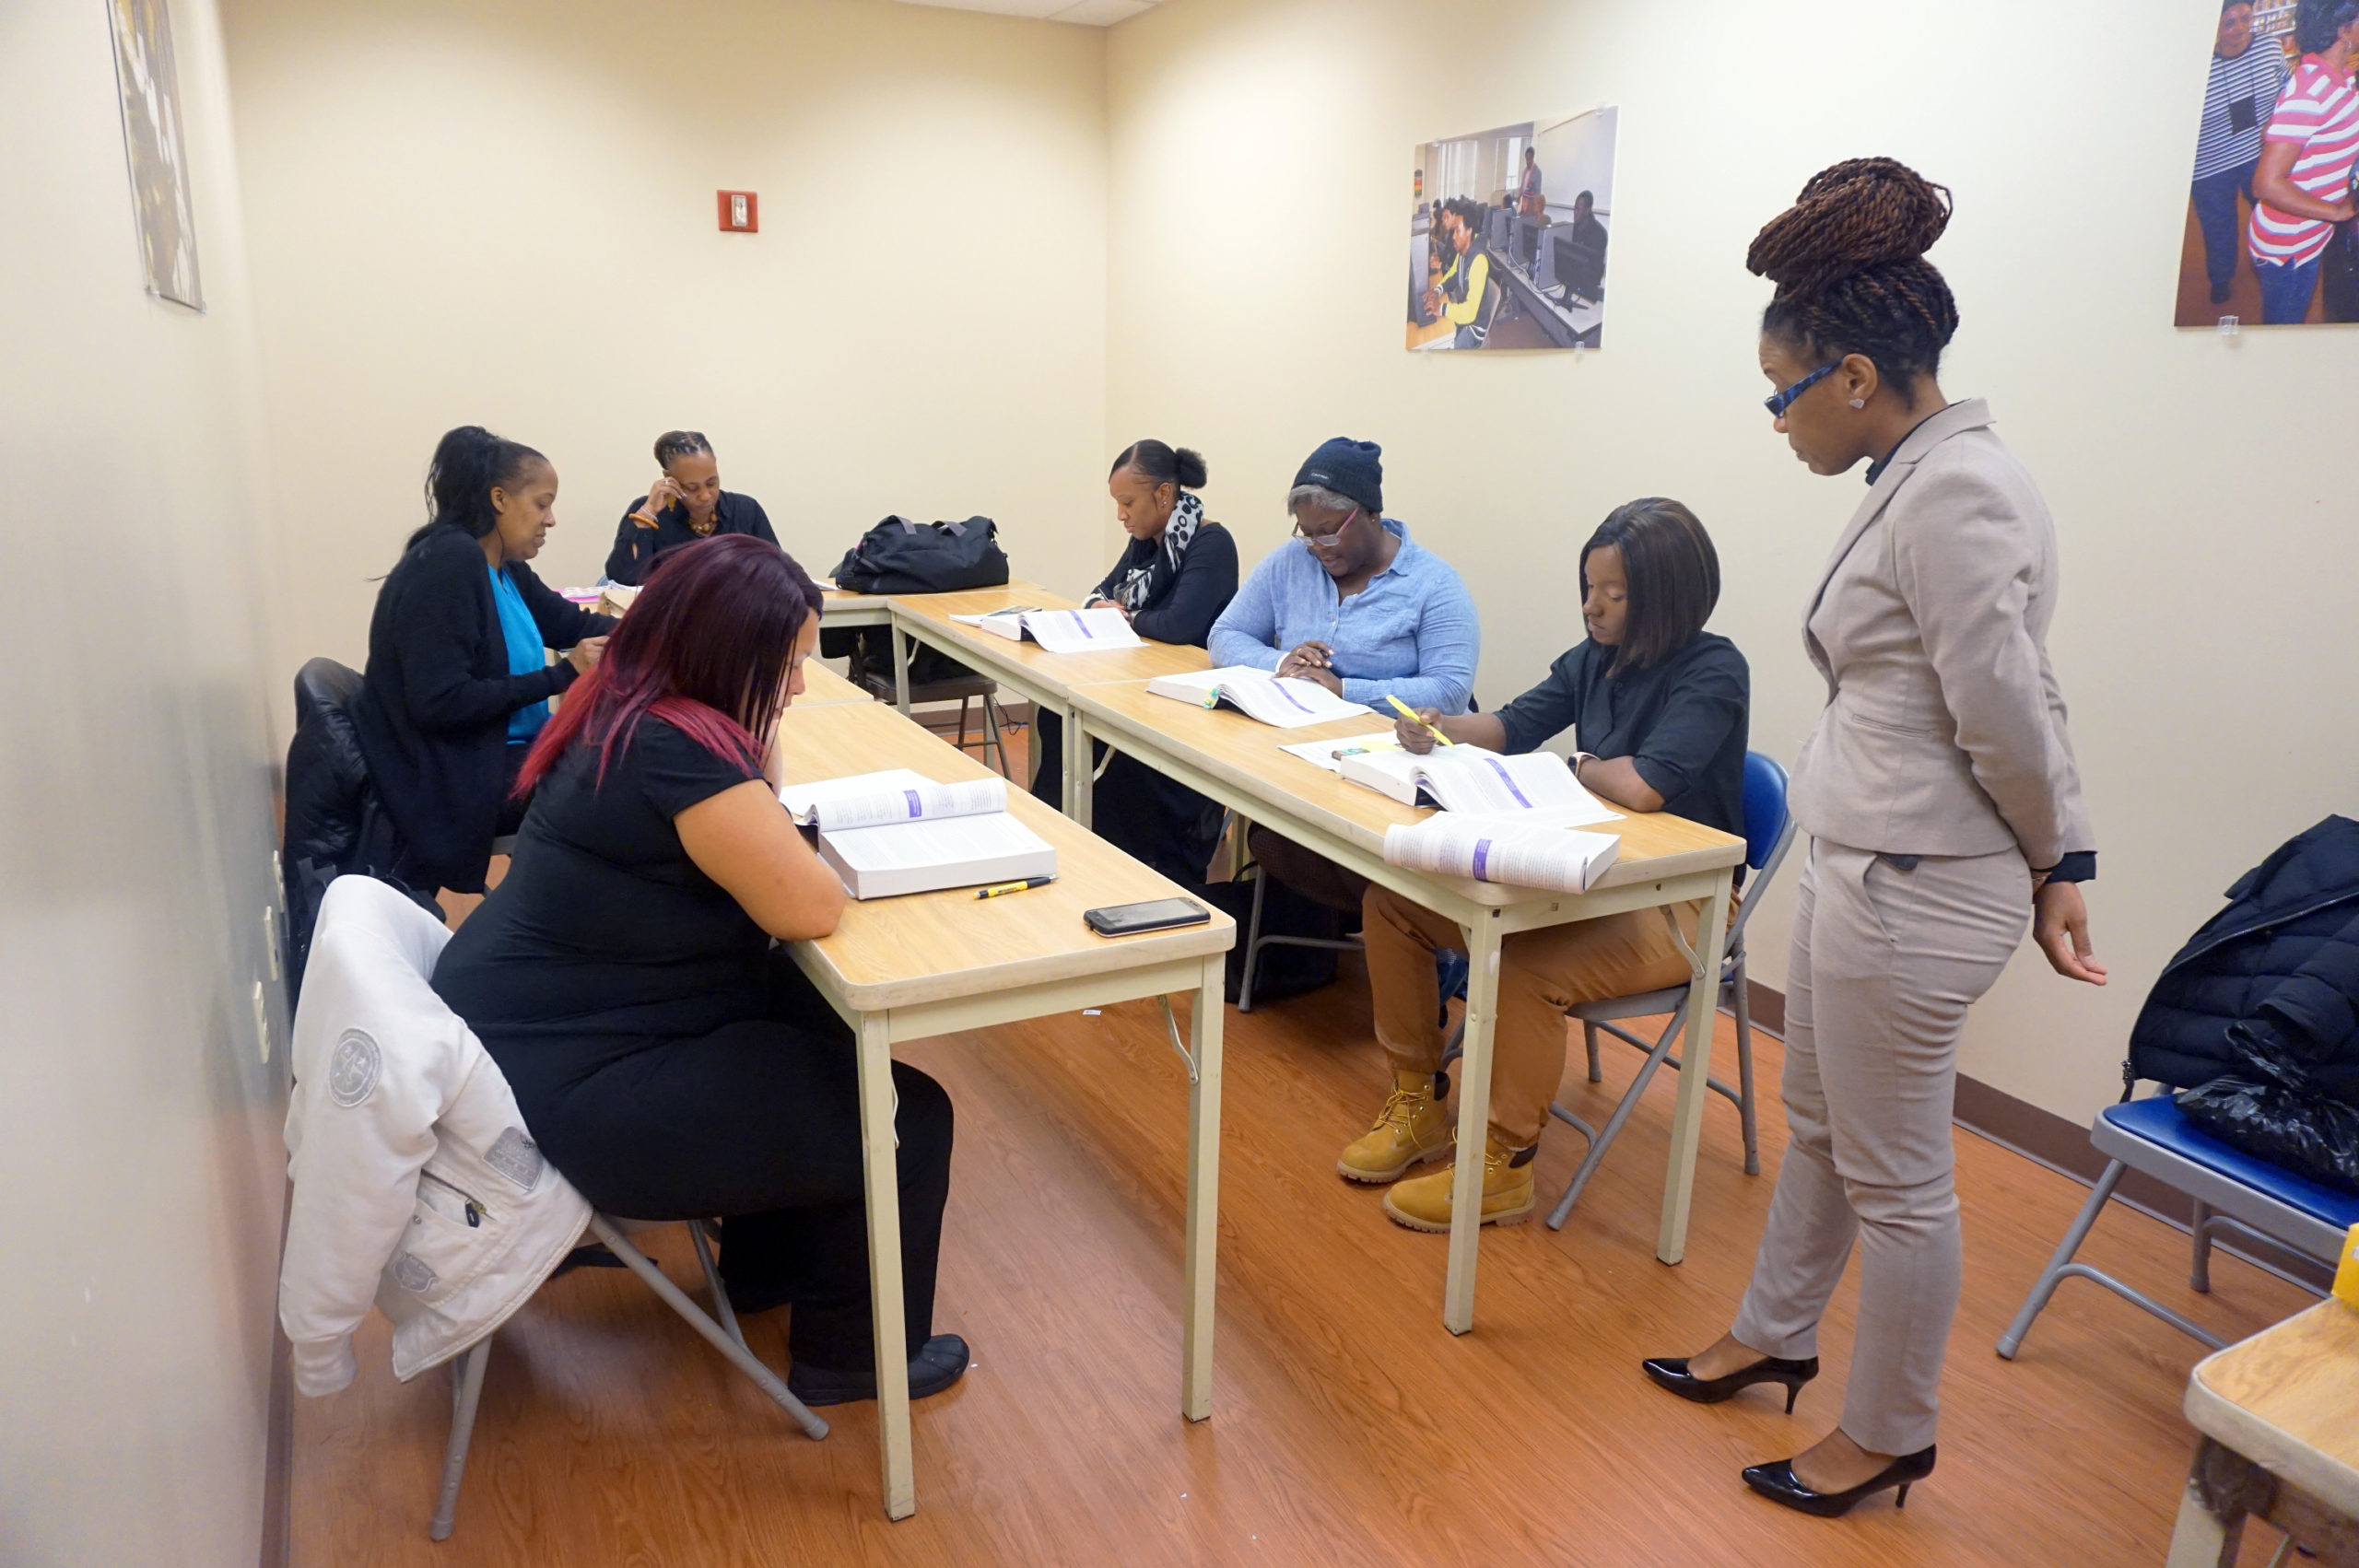 NCCTI Launches Community Healthcare Worker Program